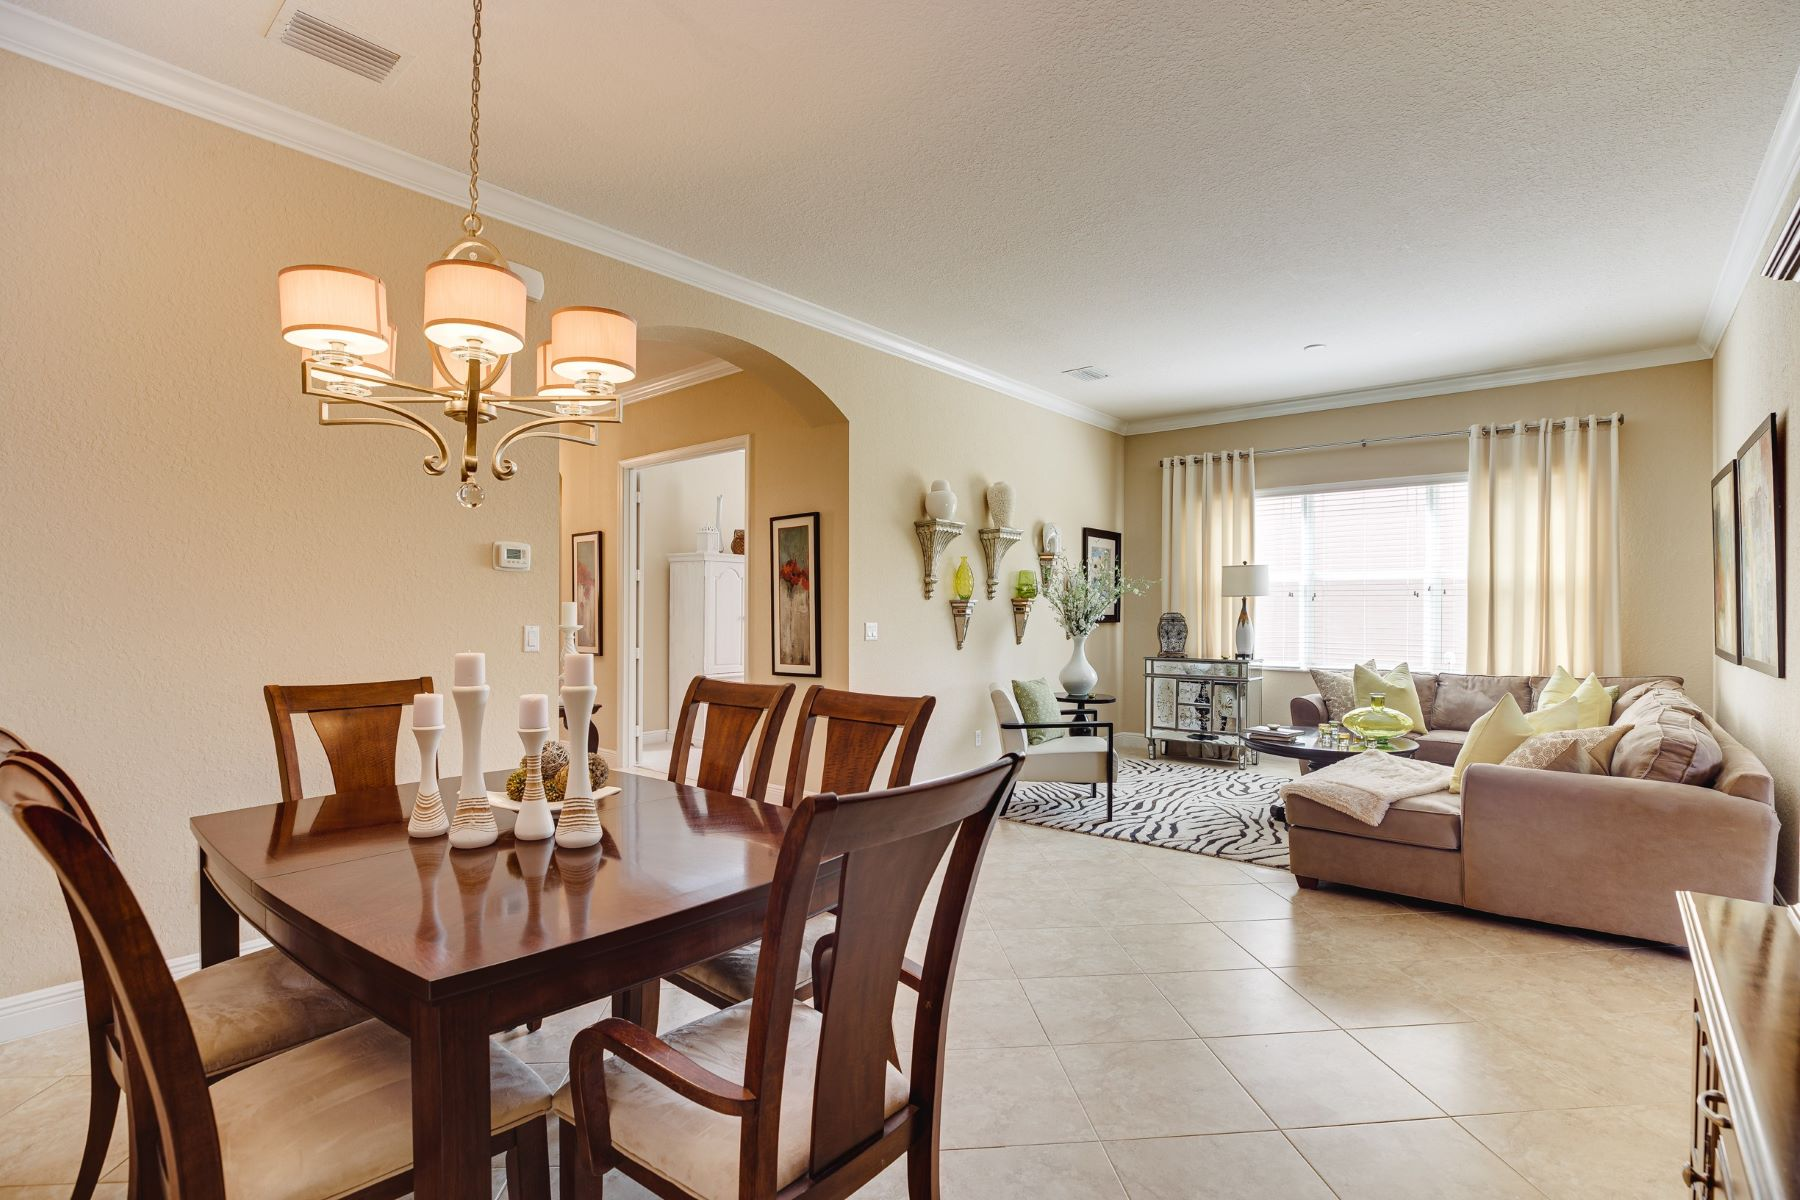 Additional photo for property listing at 1941 Grey Falcon Circle Vero Beach, Florida 32962 United States